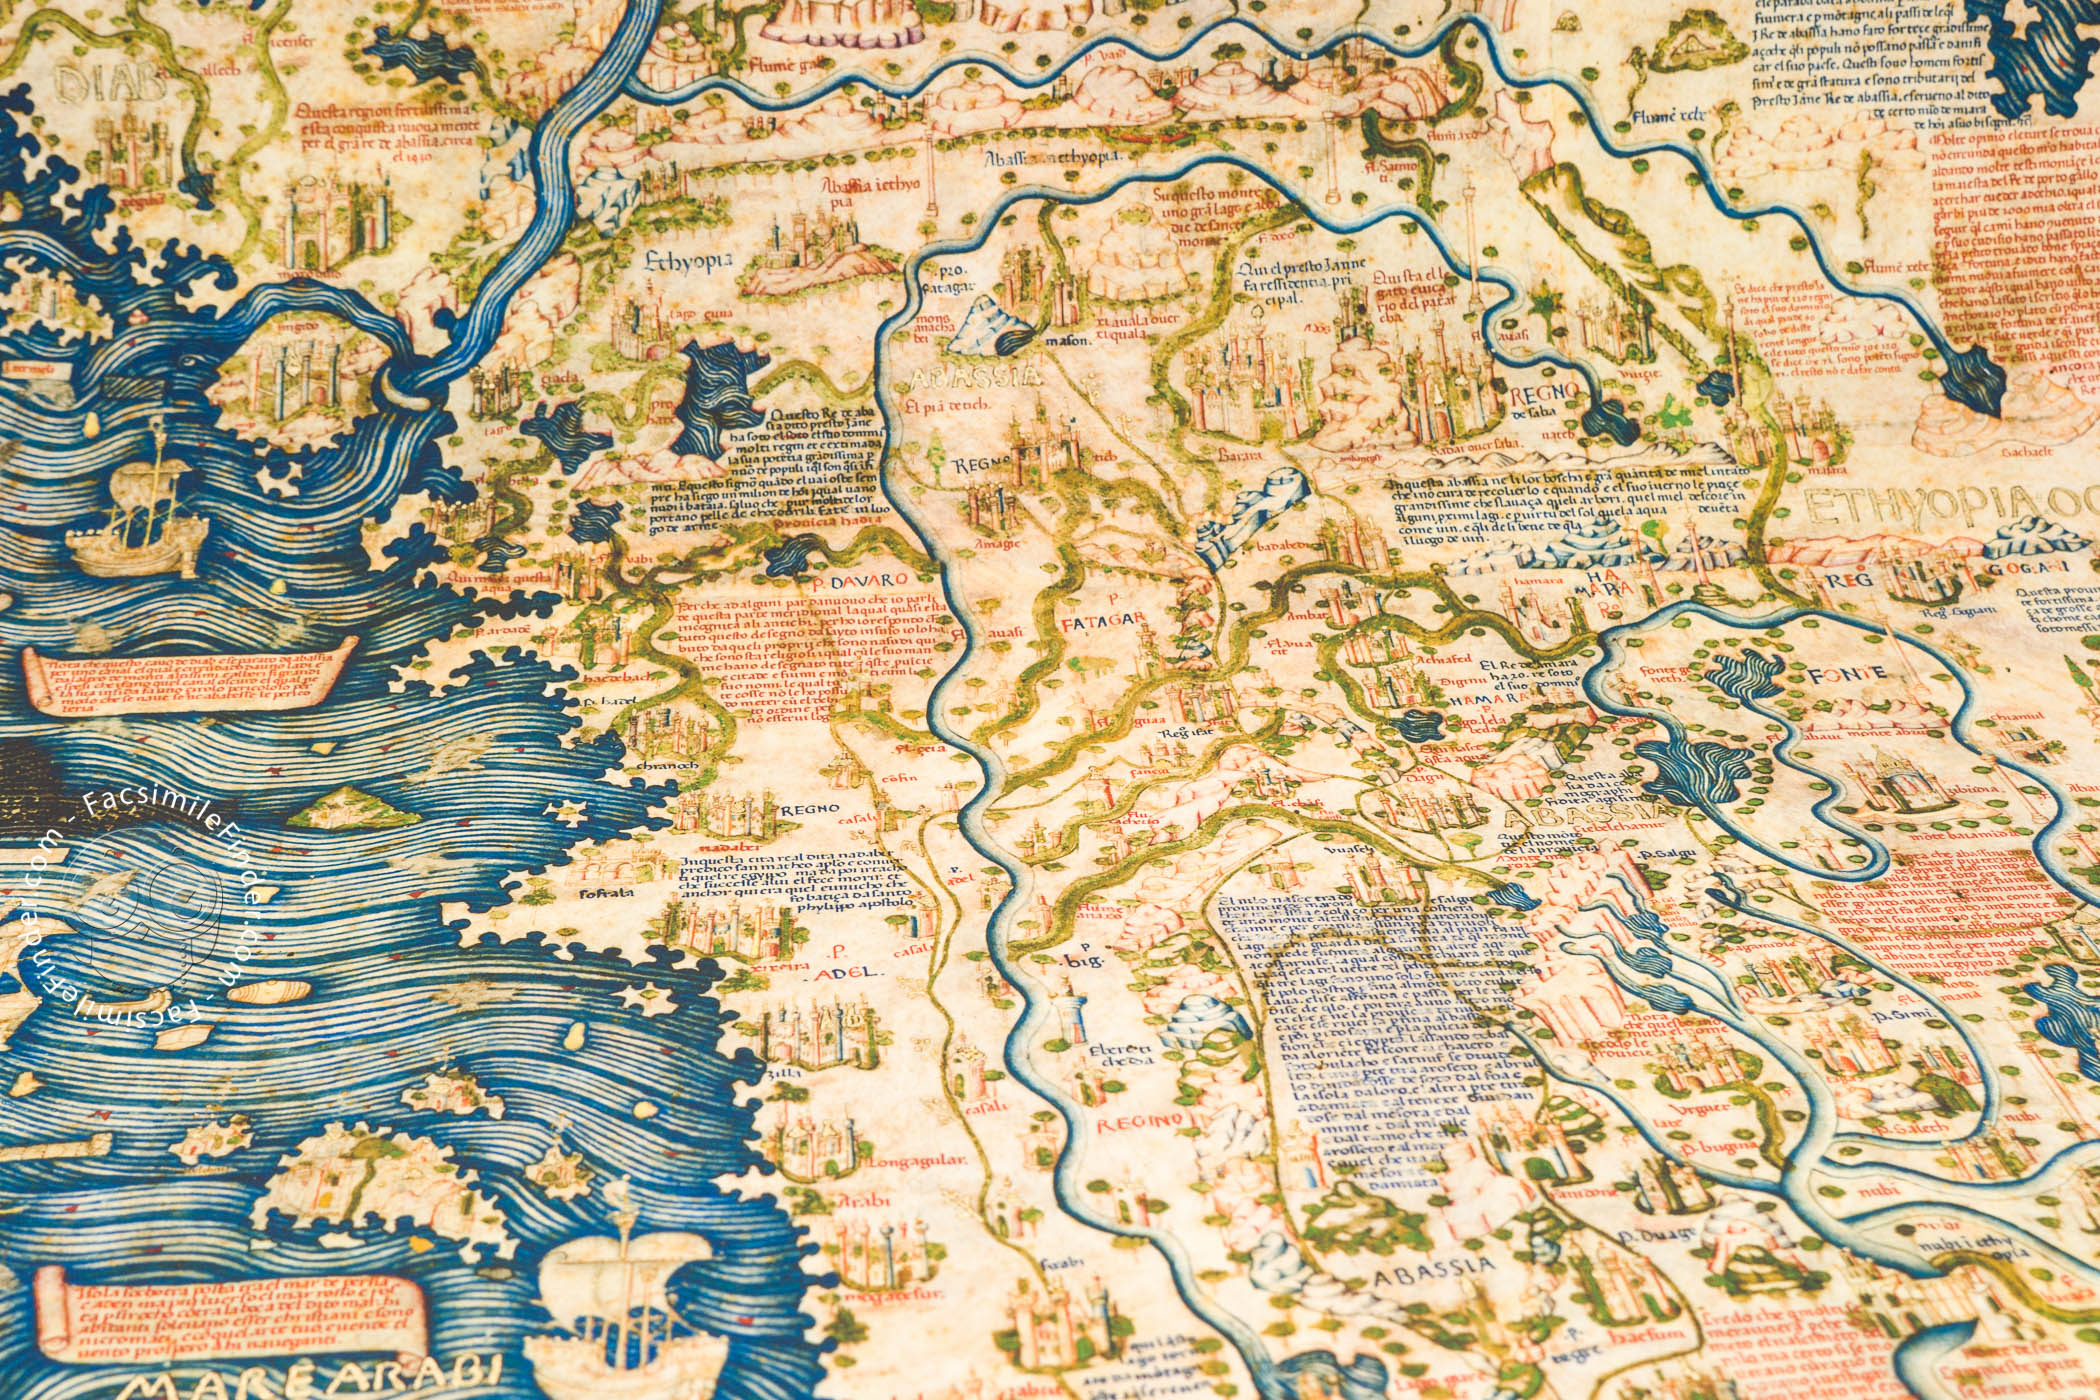 Fra mauro map facsimile edition x gumiabroncs Gallery